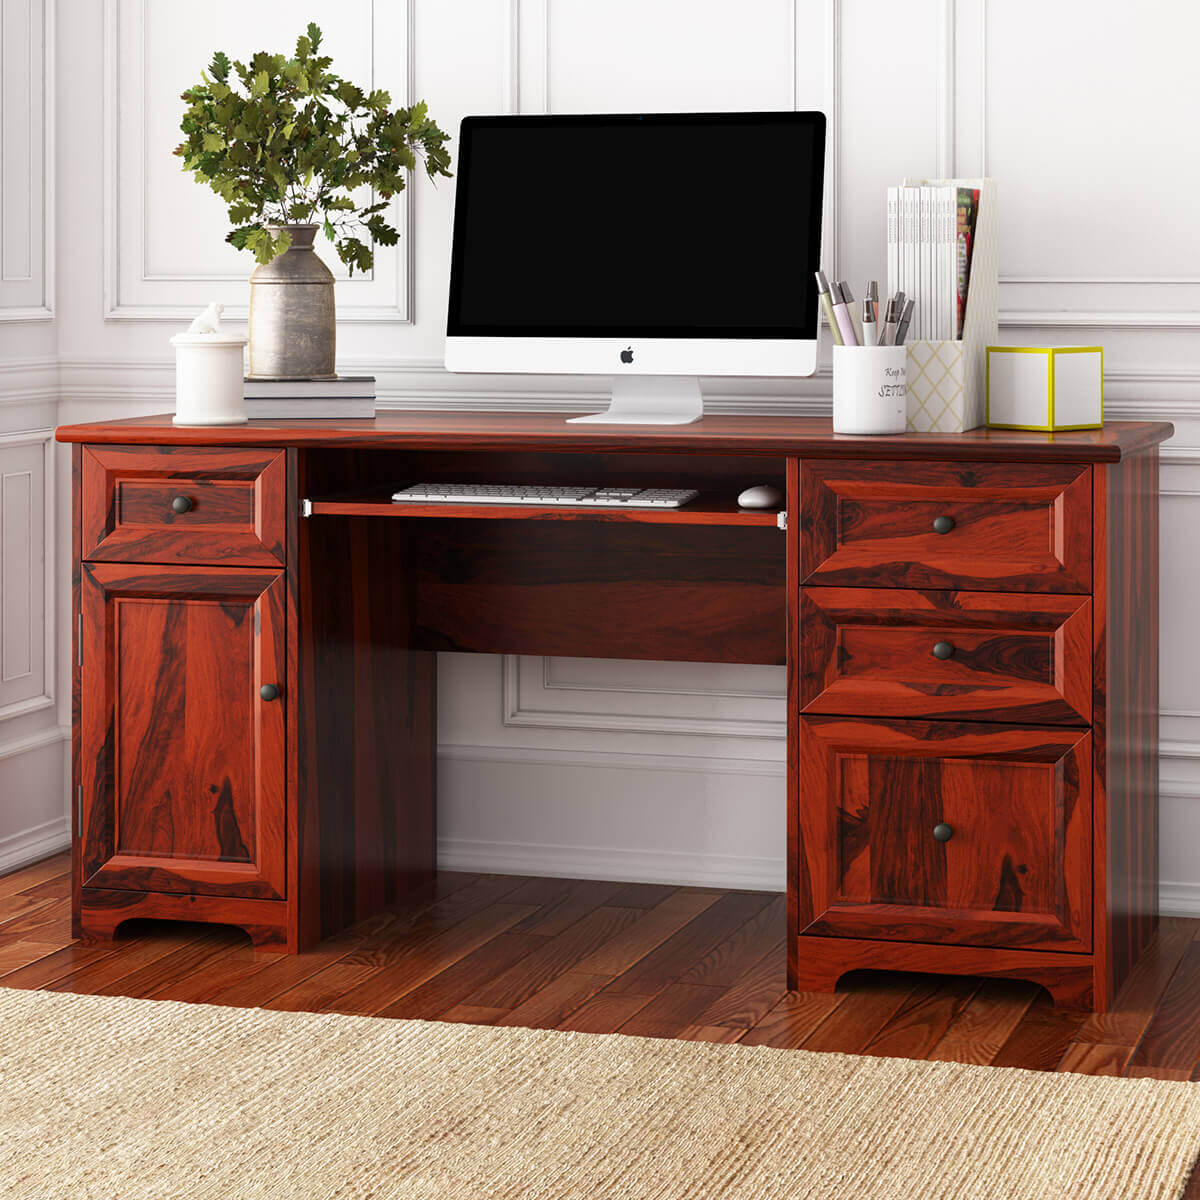 Poston Rustic Solid Wood 4 Drawer 62 Large Home Office Computer Desk